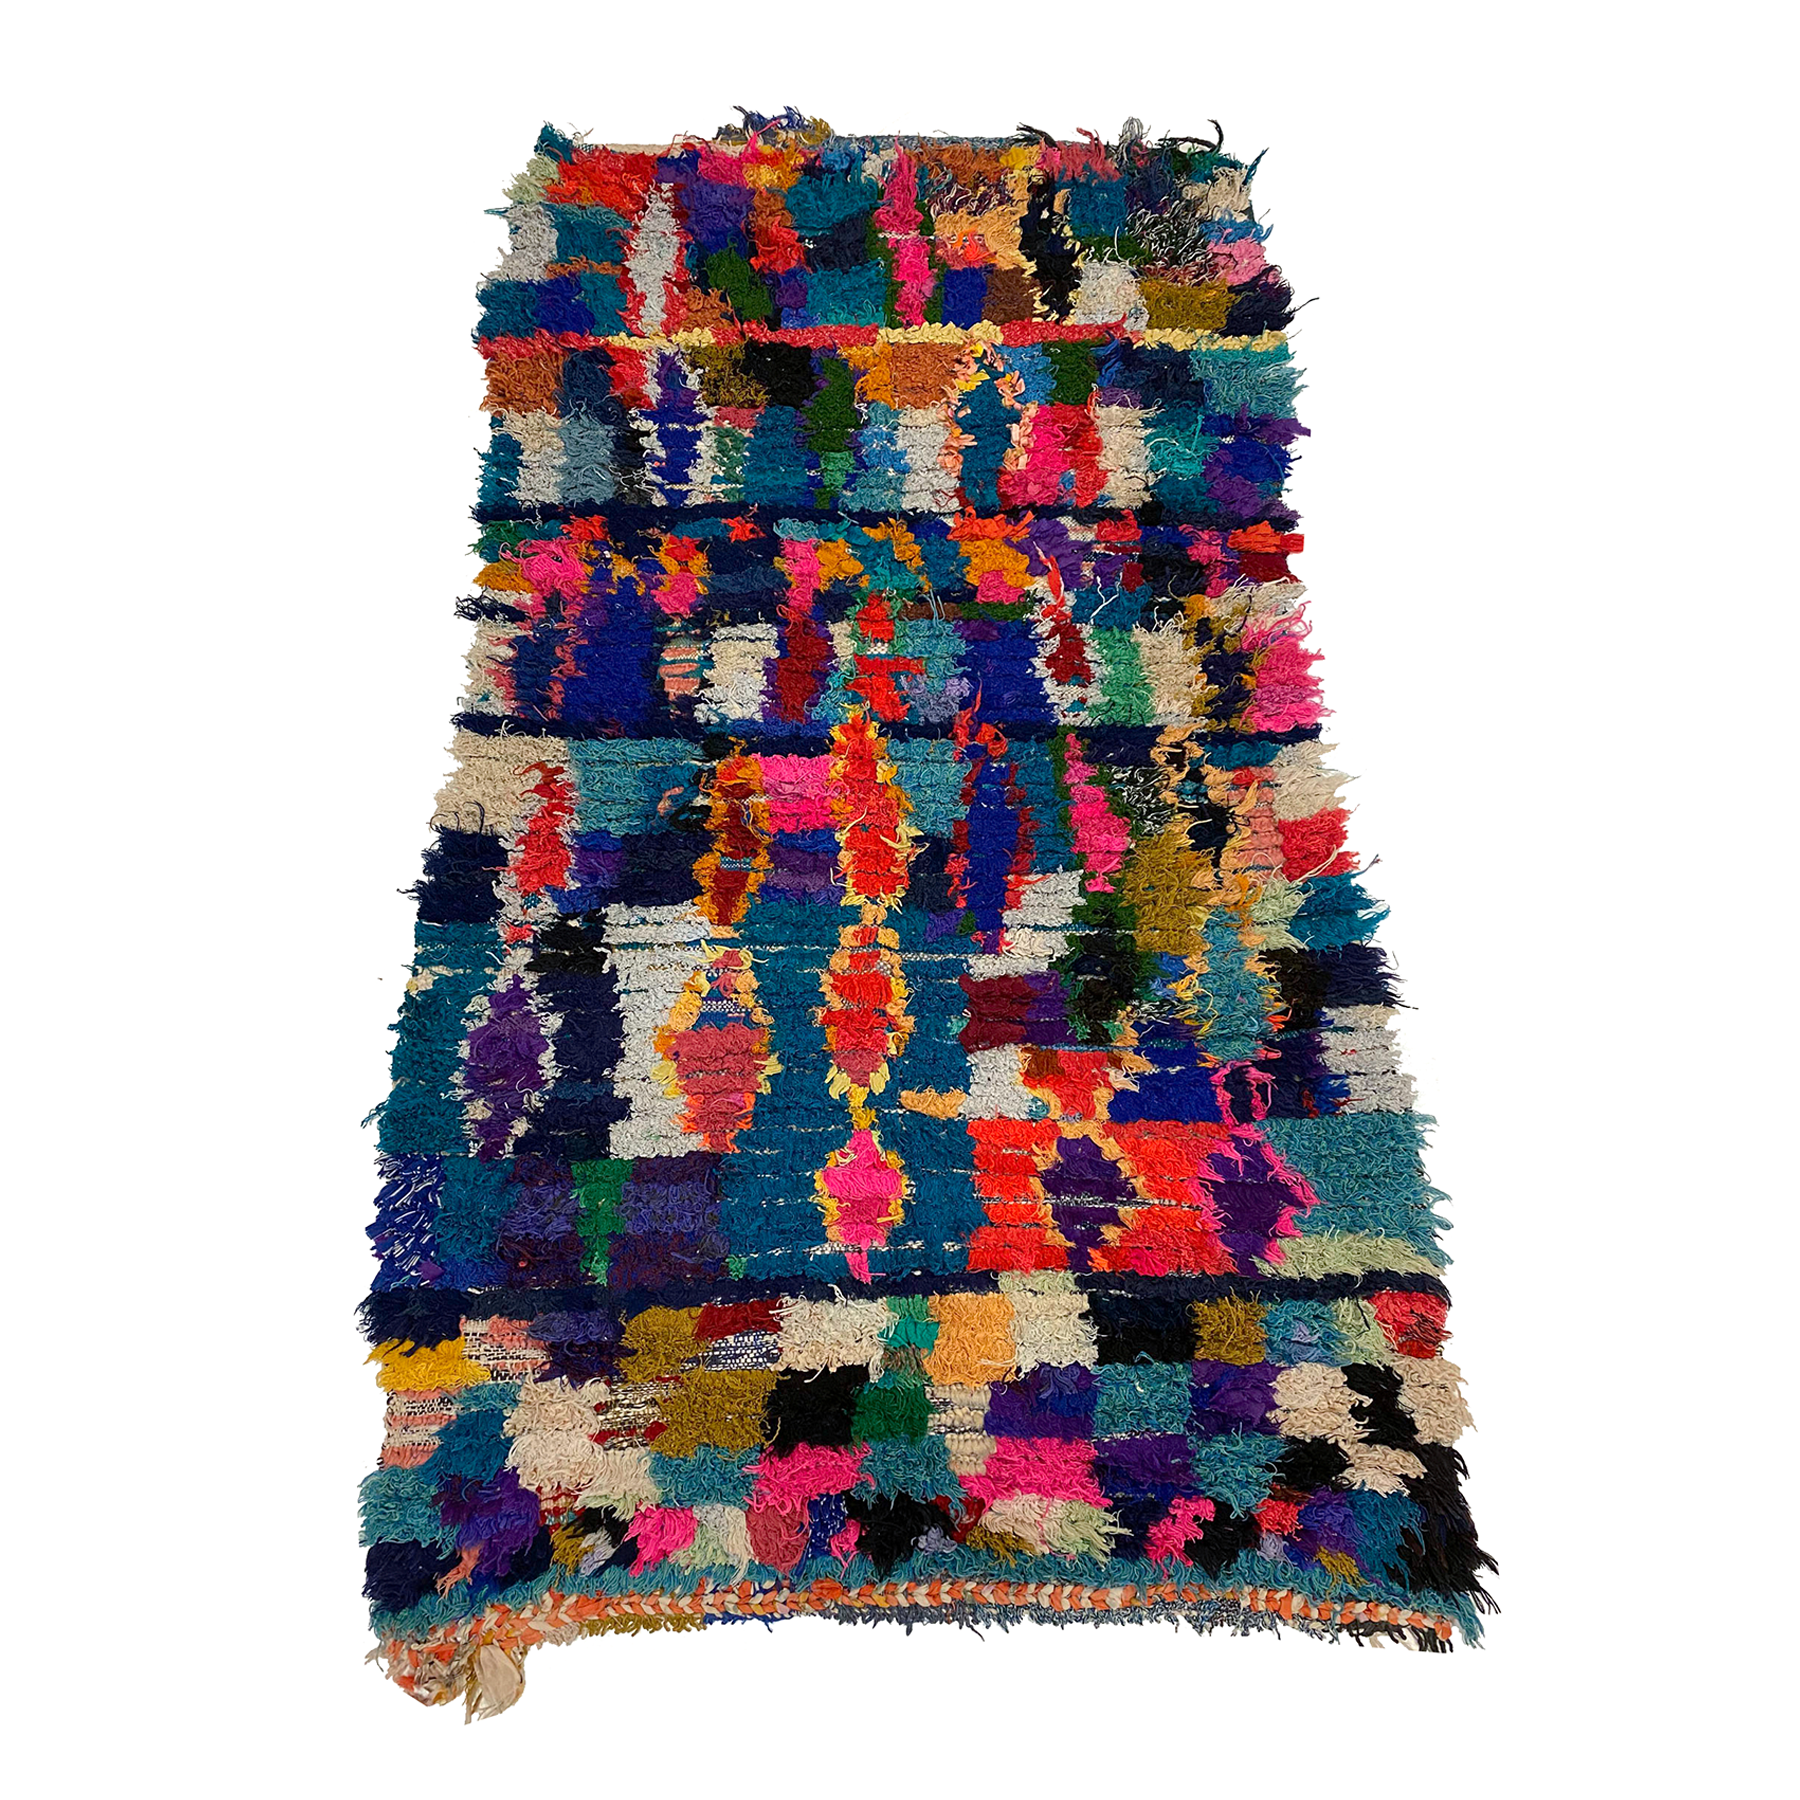 Colorful boucherouite Moroccan throw rug - Kantara | Moroccan Rugs